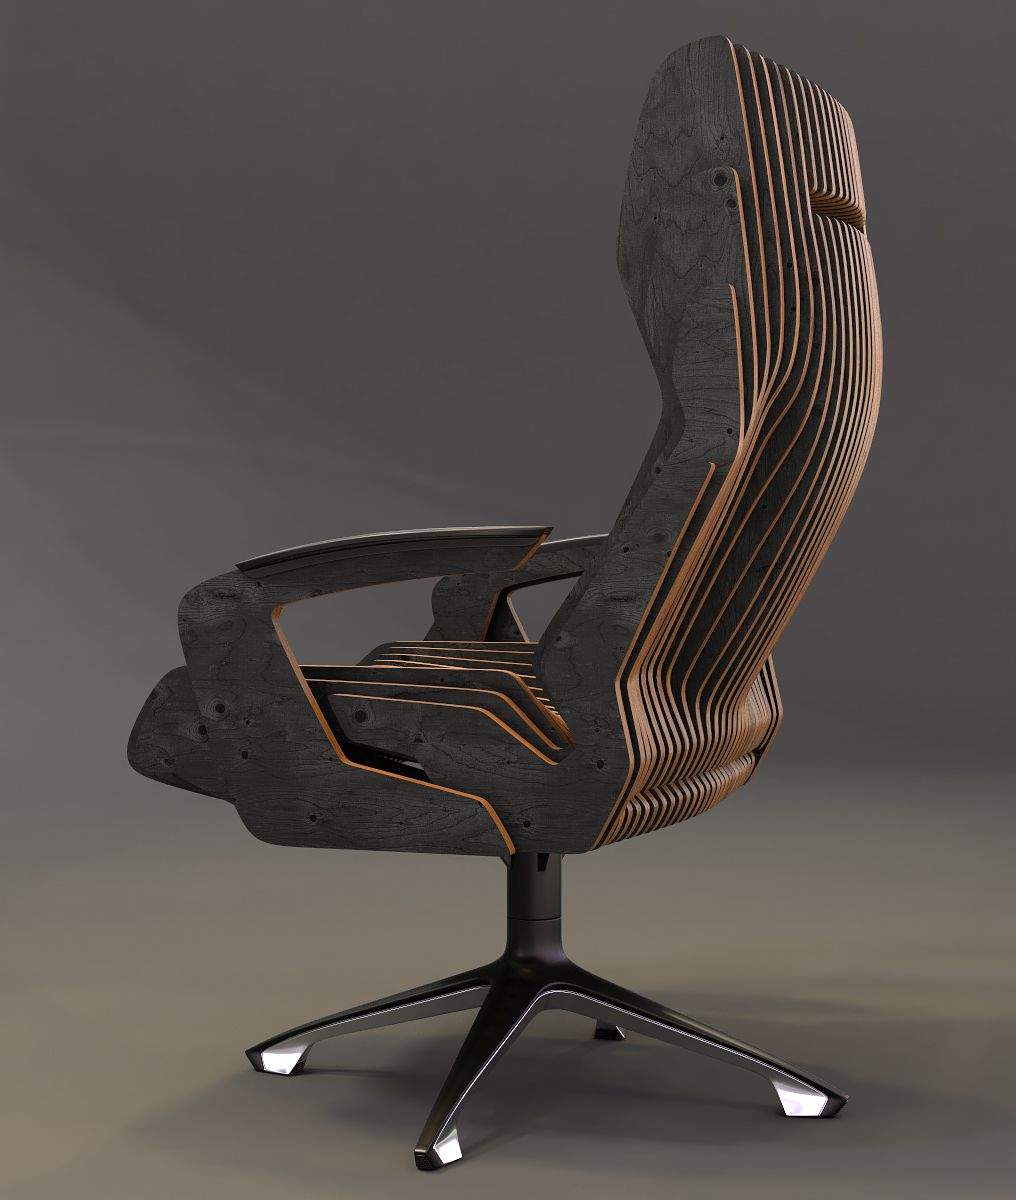 Concept Of A Parametric Chair | General Tips & Ideas | Pinterest With Regard To Revolve Swivel Accent Chairs (View 16 of 23)